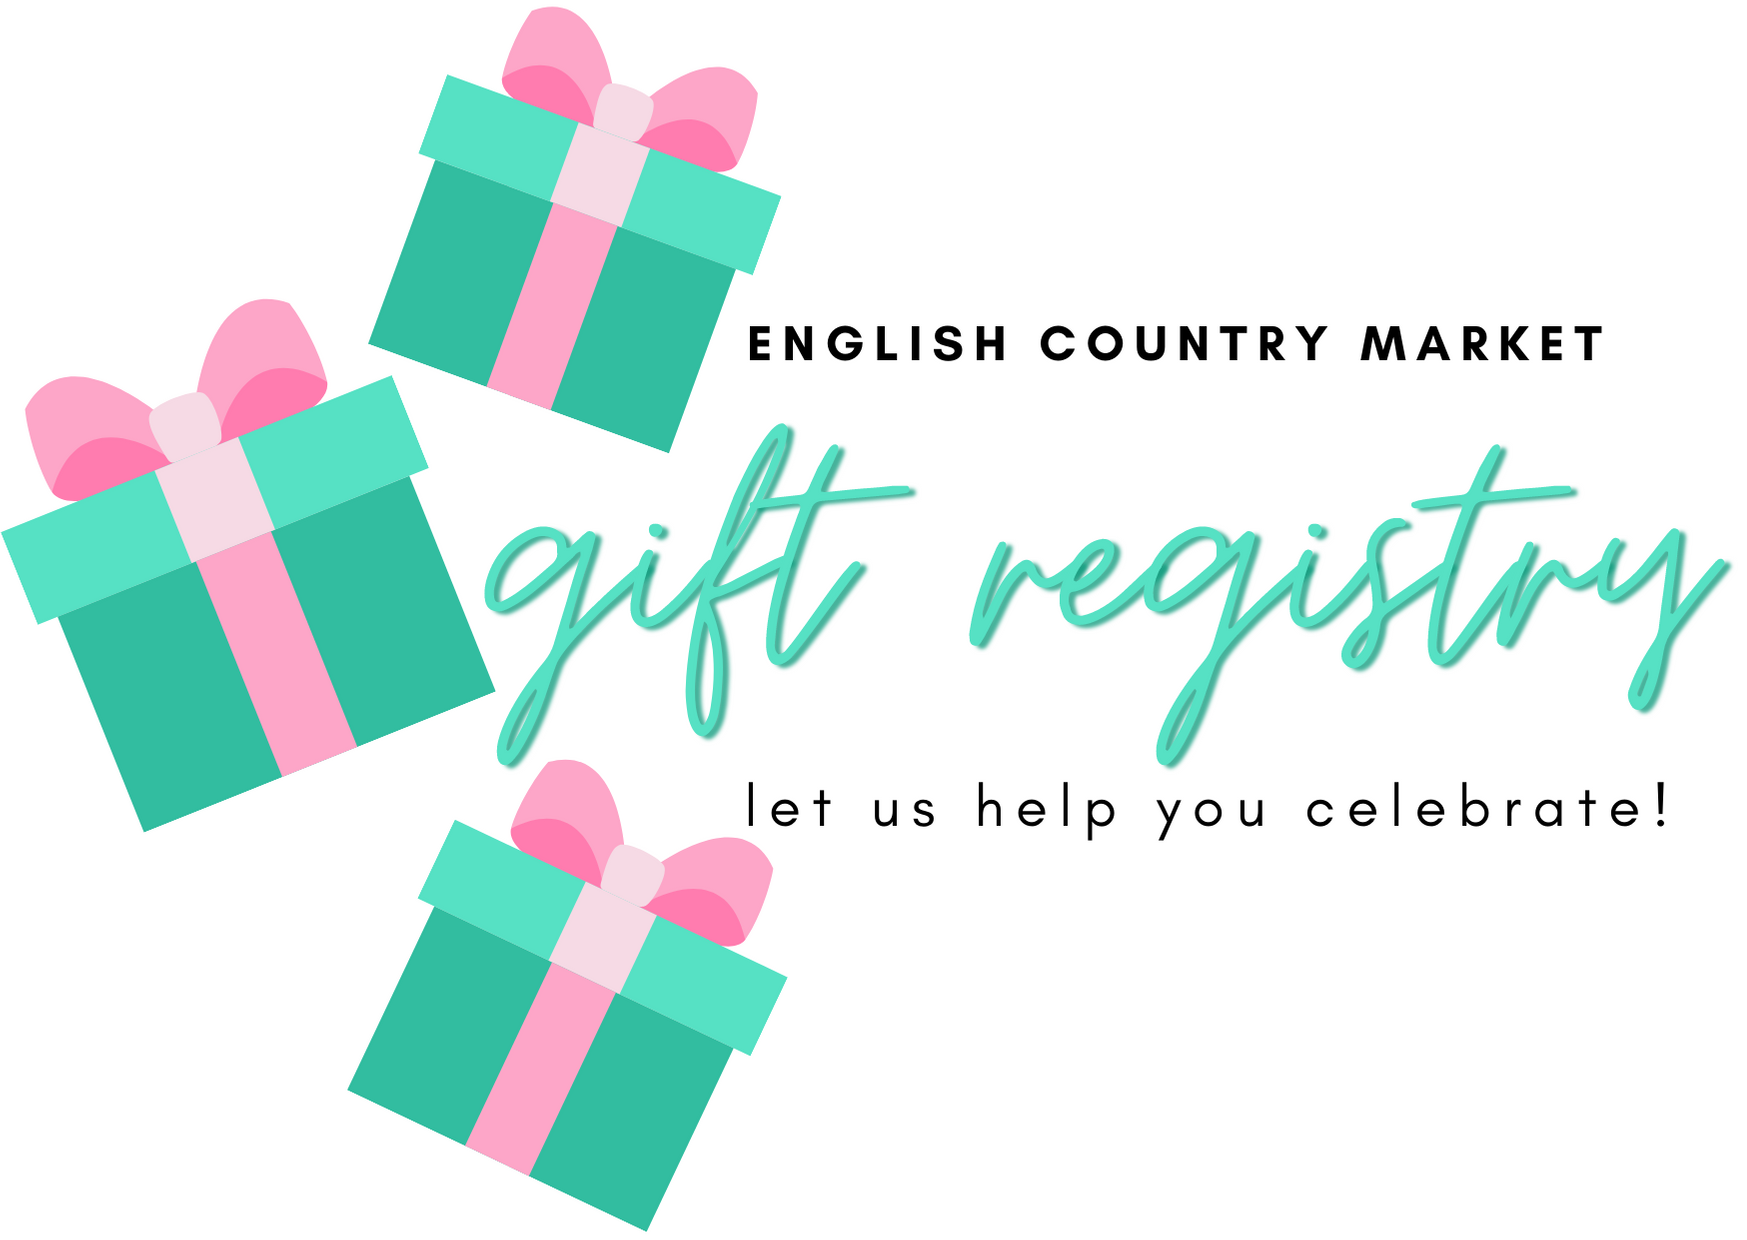 English Country Market Gift Registry. Let us help you celebrate!